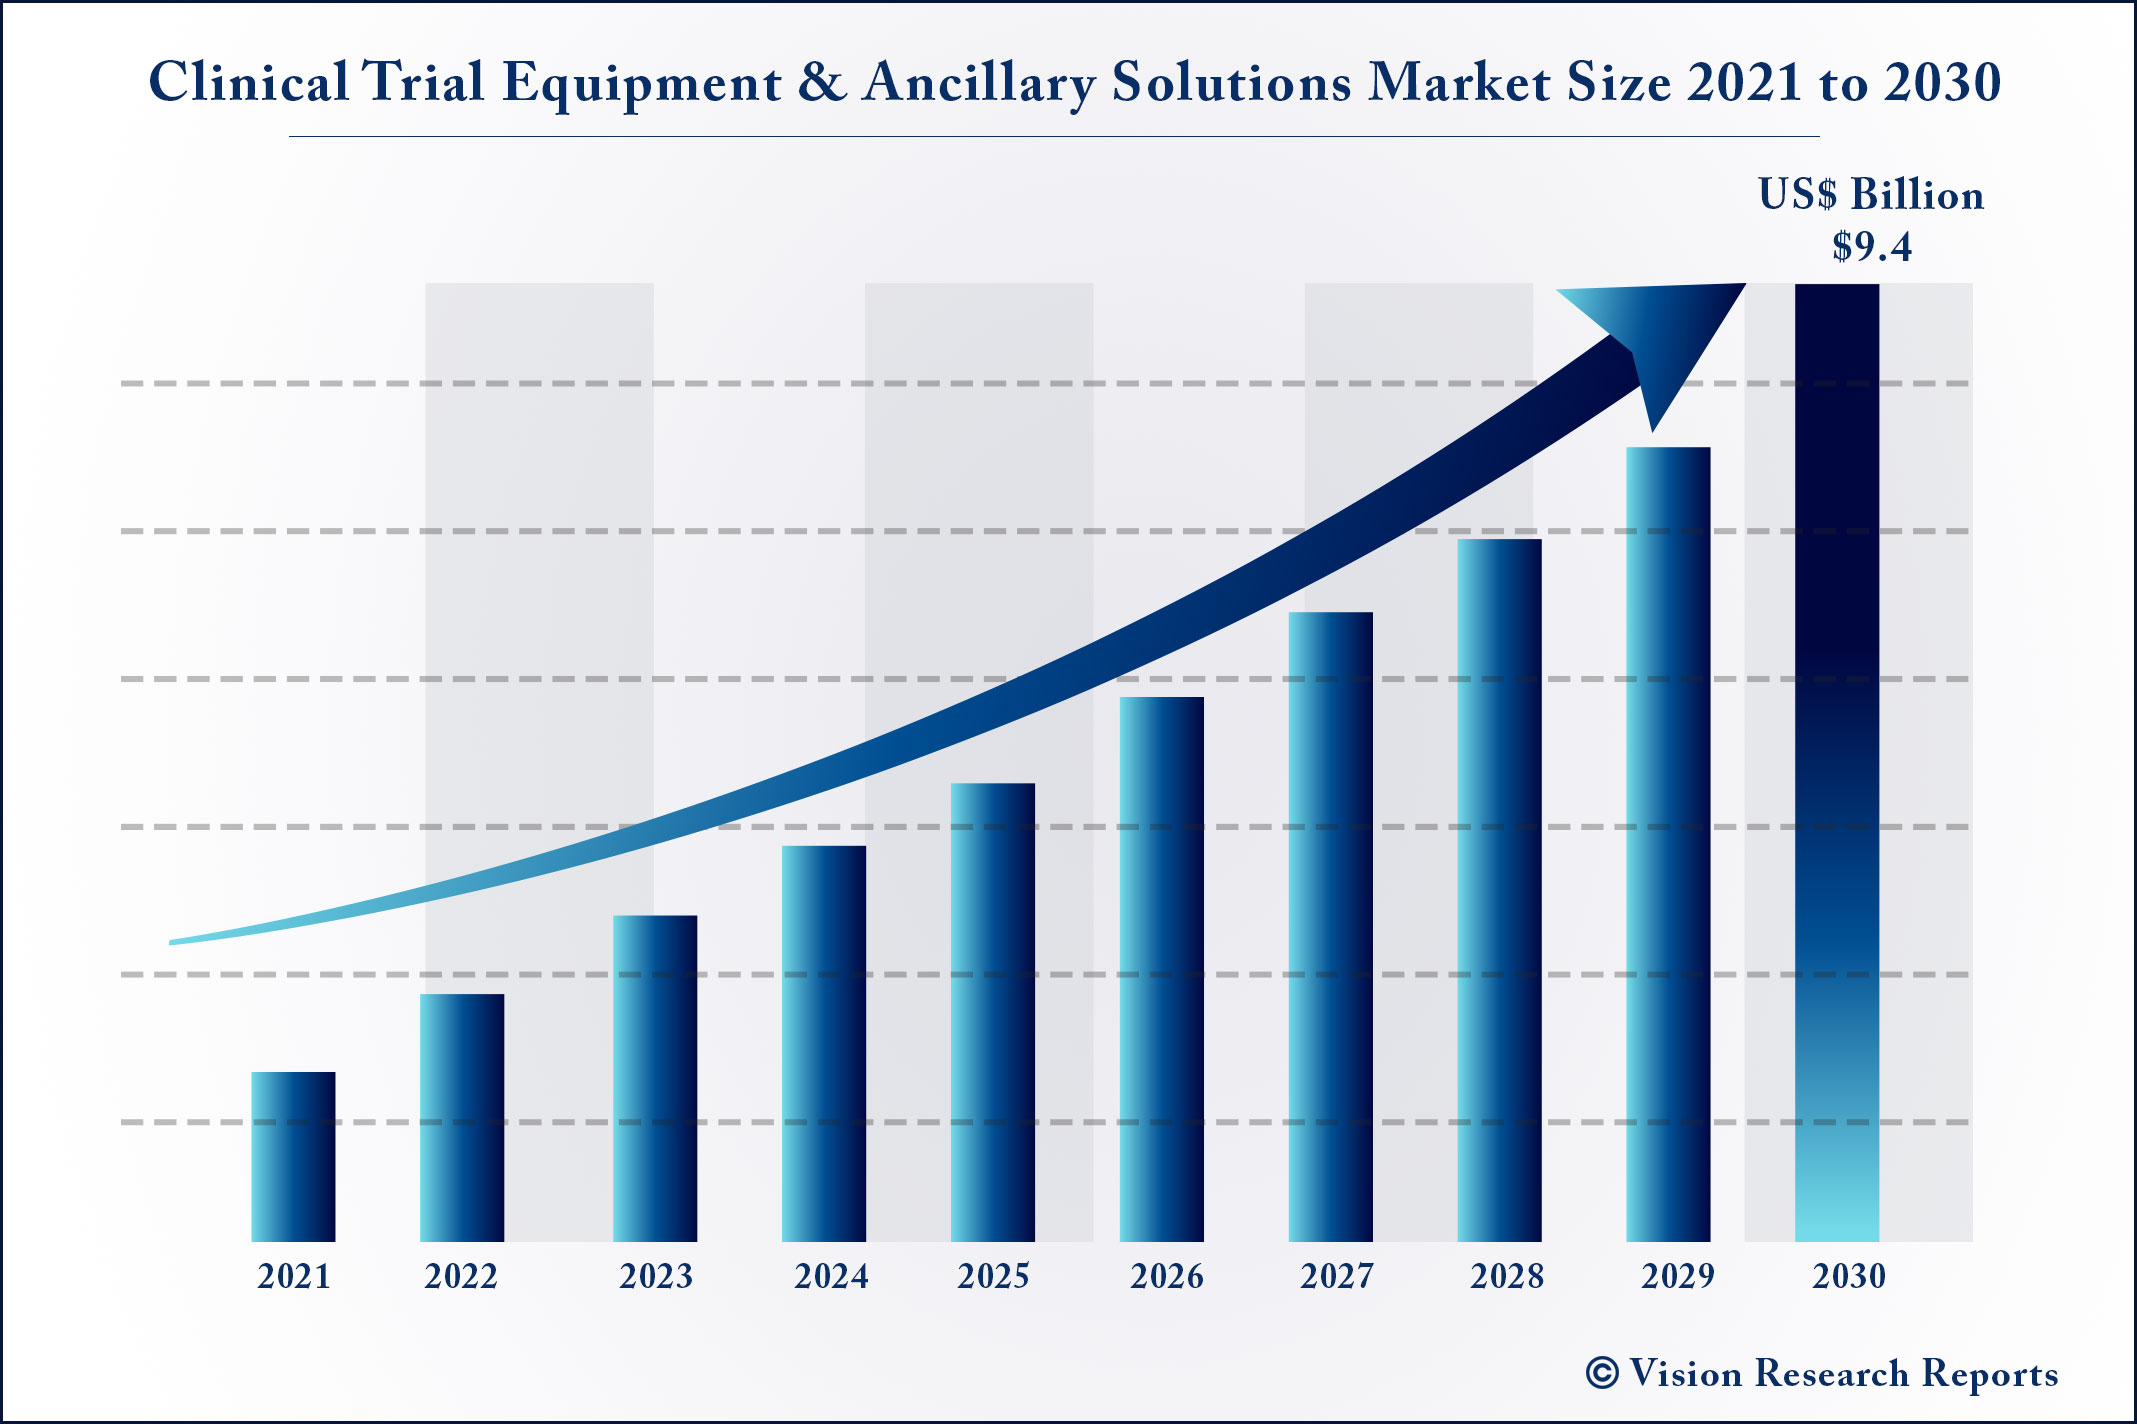 Clinical Trial Equipment & Ancillary Solutions Market Size 2021 to 2030